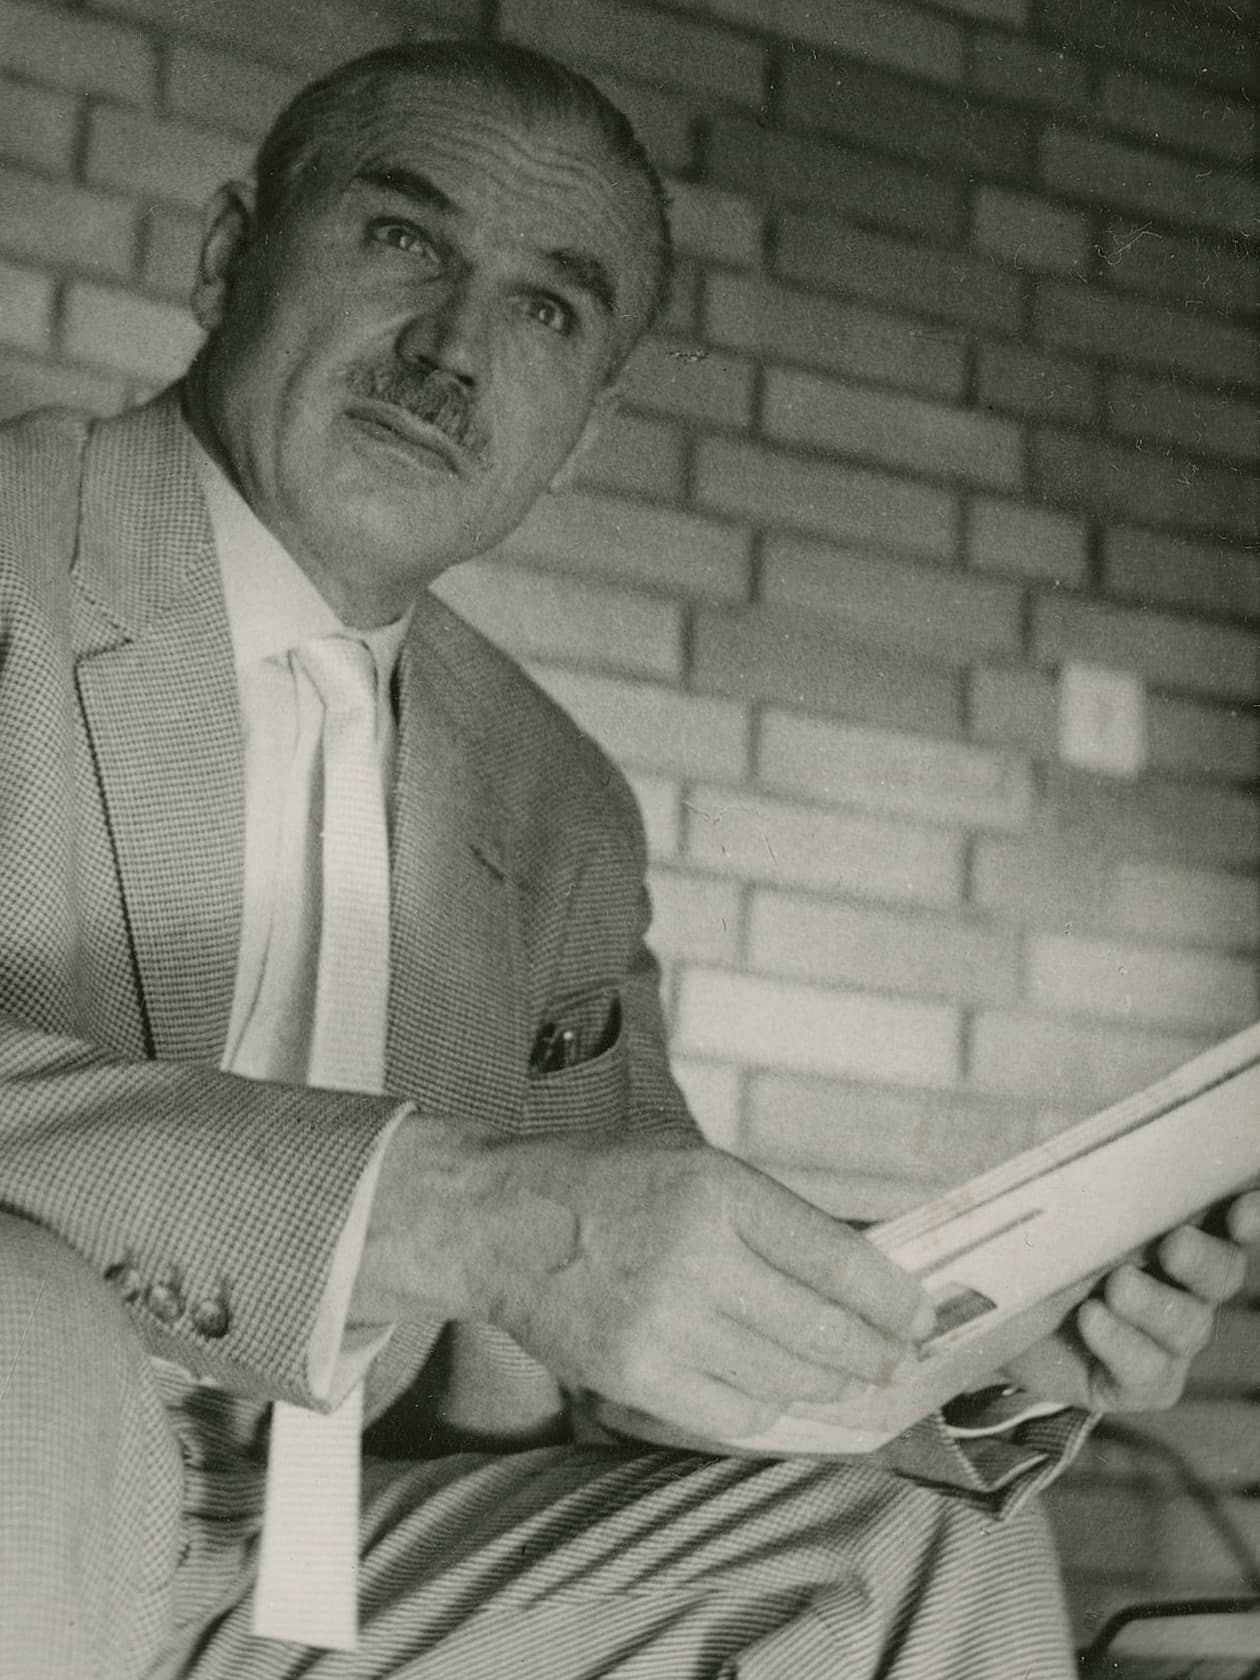 Ernst Neufert in Darmstadt in the 1950s